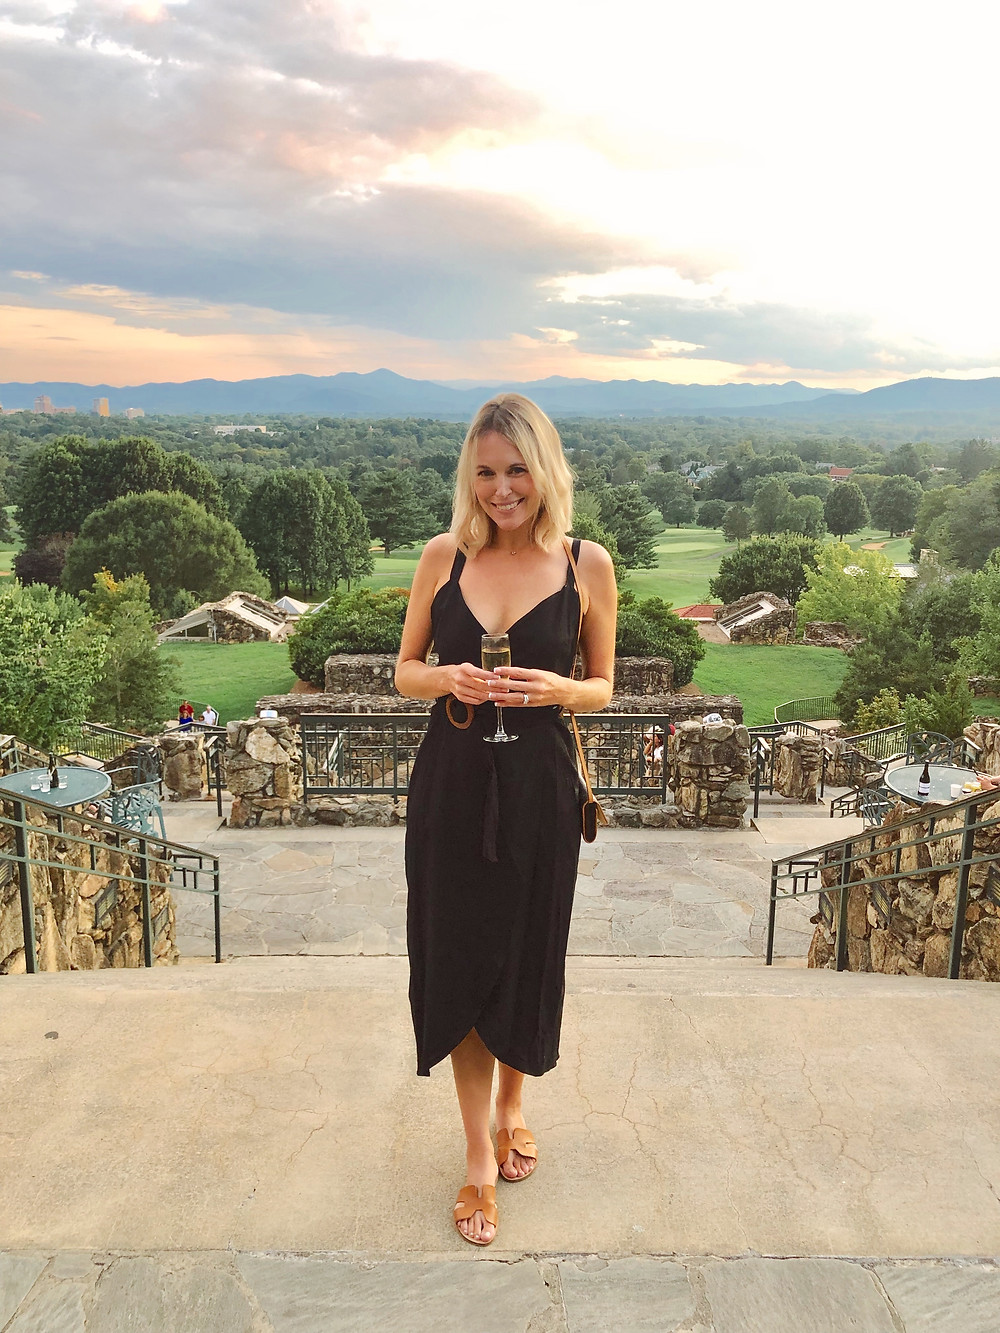 Summer date night outfit: black dress, flat tan sandals, Louis Vuitton crossbody bag. What to wear on romantic getaway to Grove Park Inn in Asheville, NC